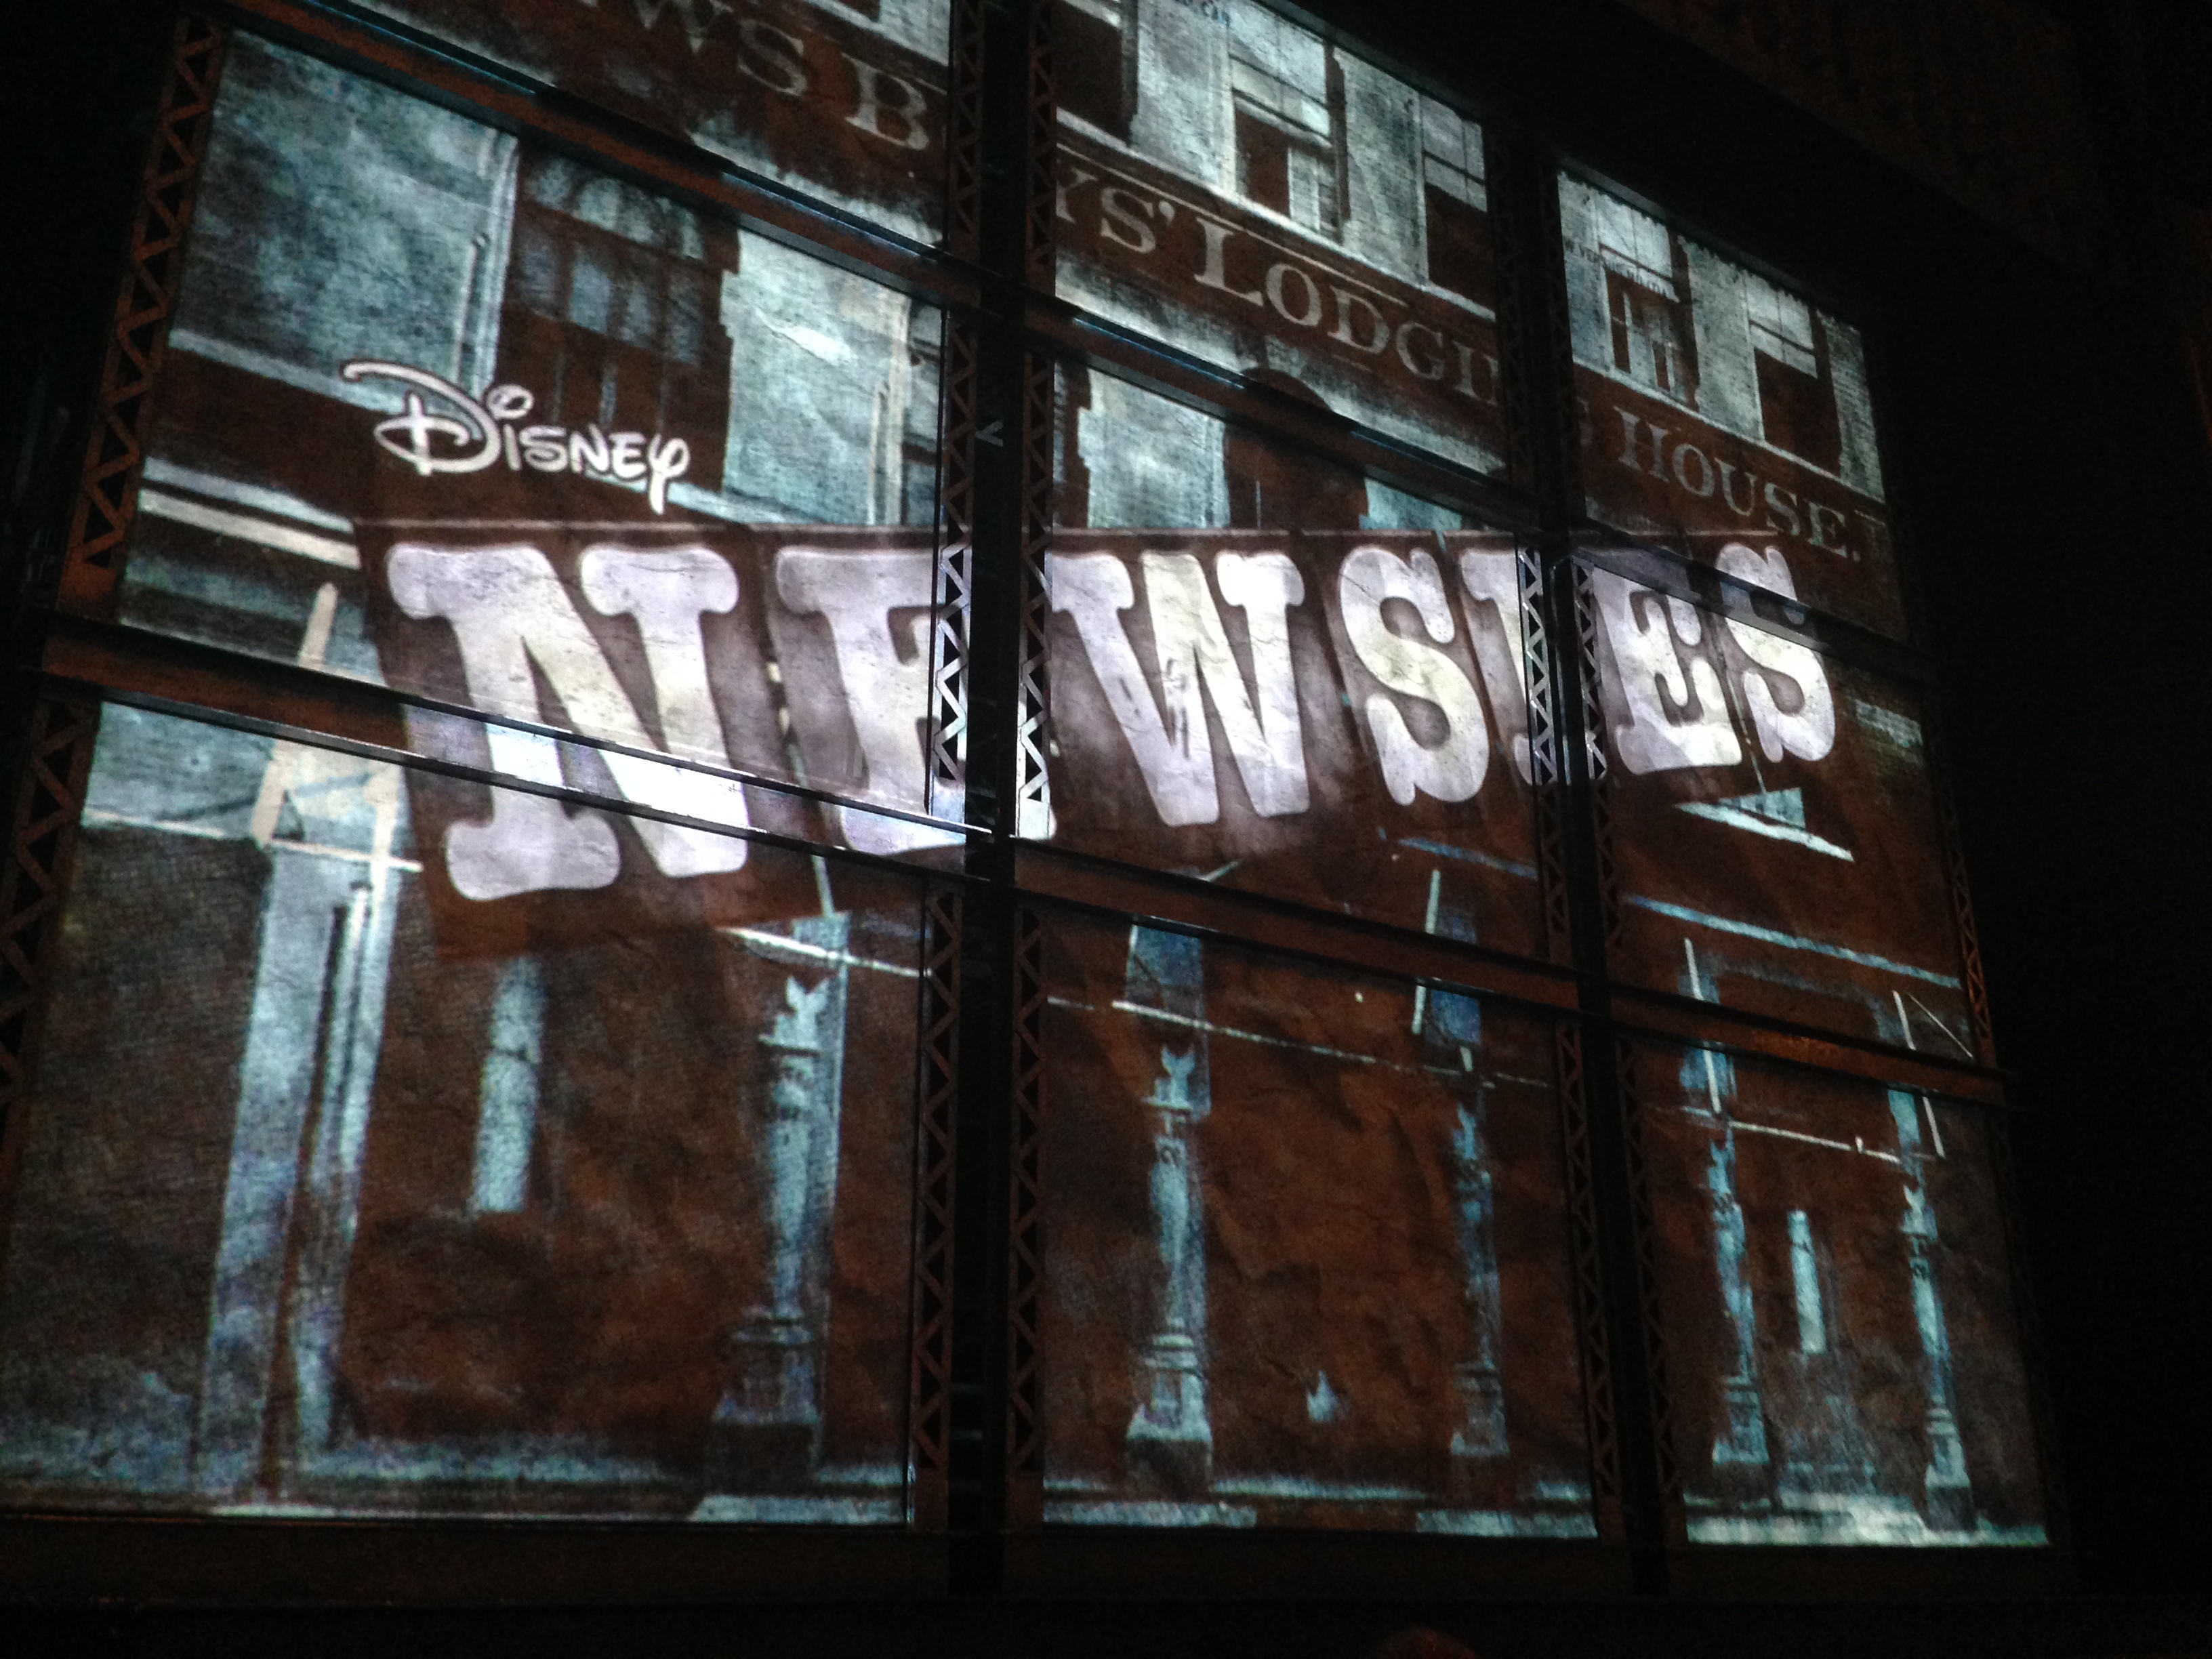 Extra! Extra! – Newsies Is Phenomenal! (Broadway musical review)